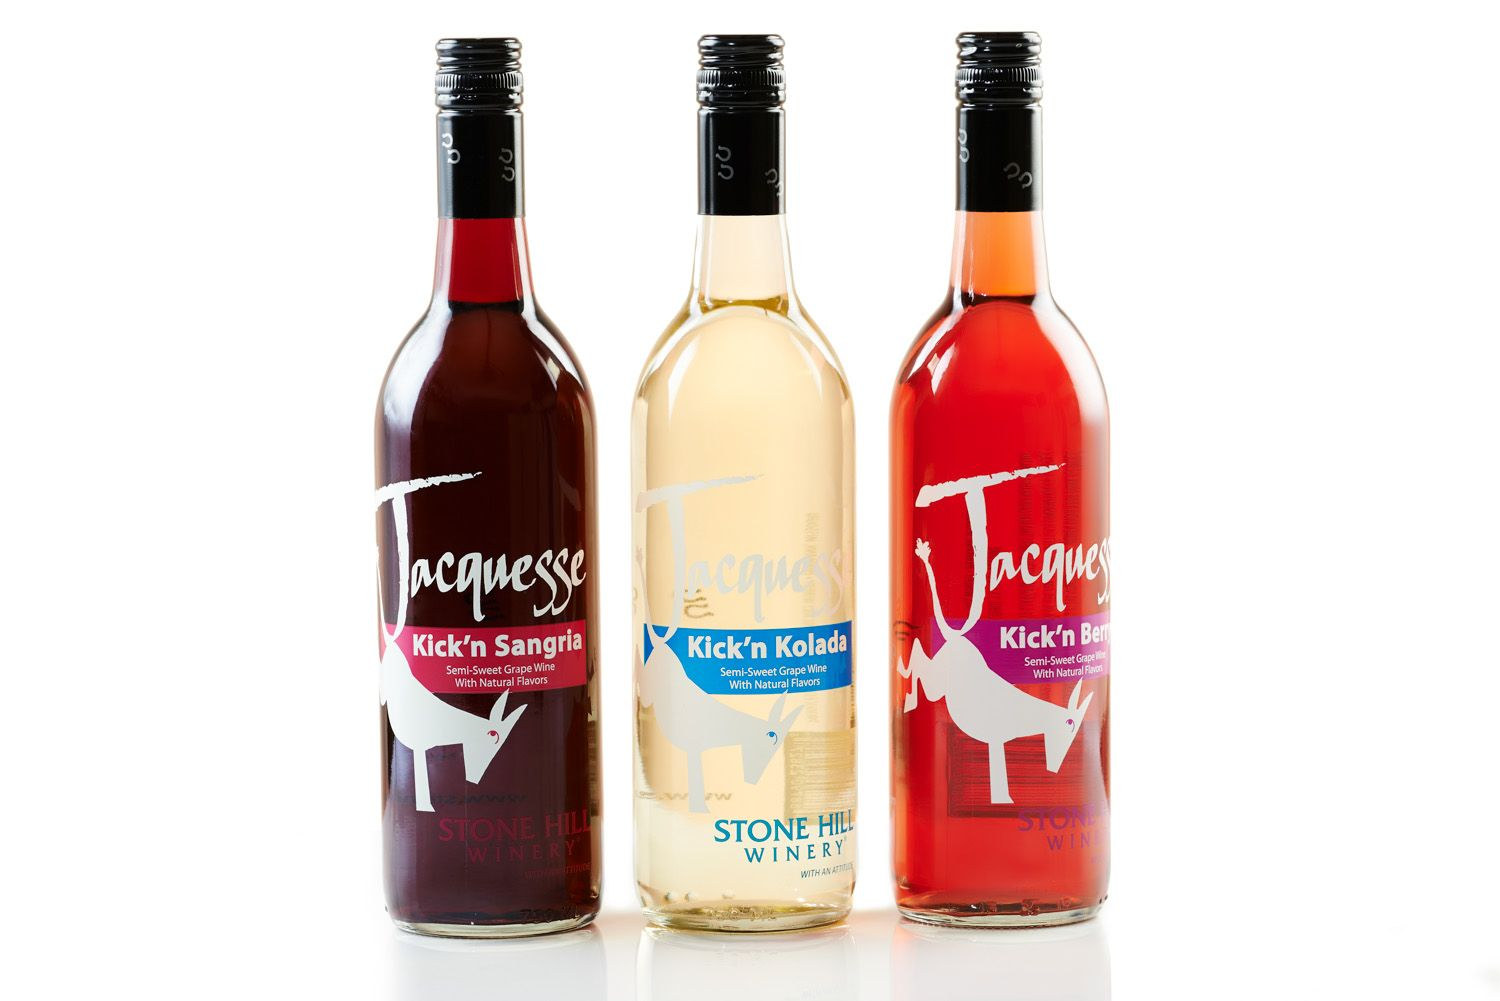 Here Are Three Great Refreshing Wines For The Summer Http Shop Stonehillwinery Com Storefront Aspx Wine Bottle Wines Rose Wine Bottle